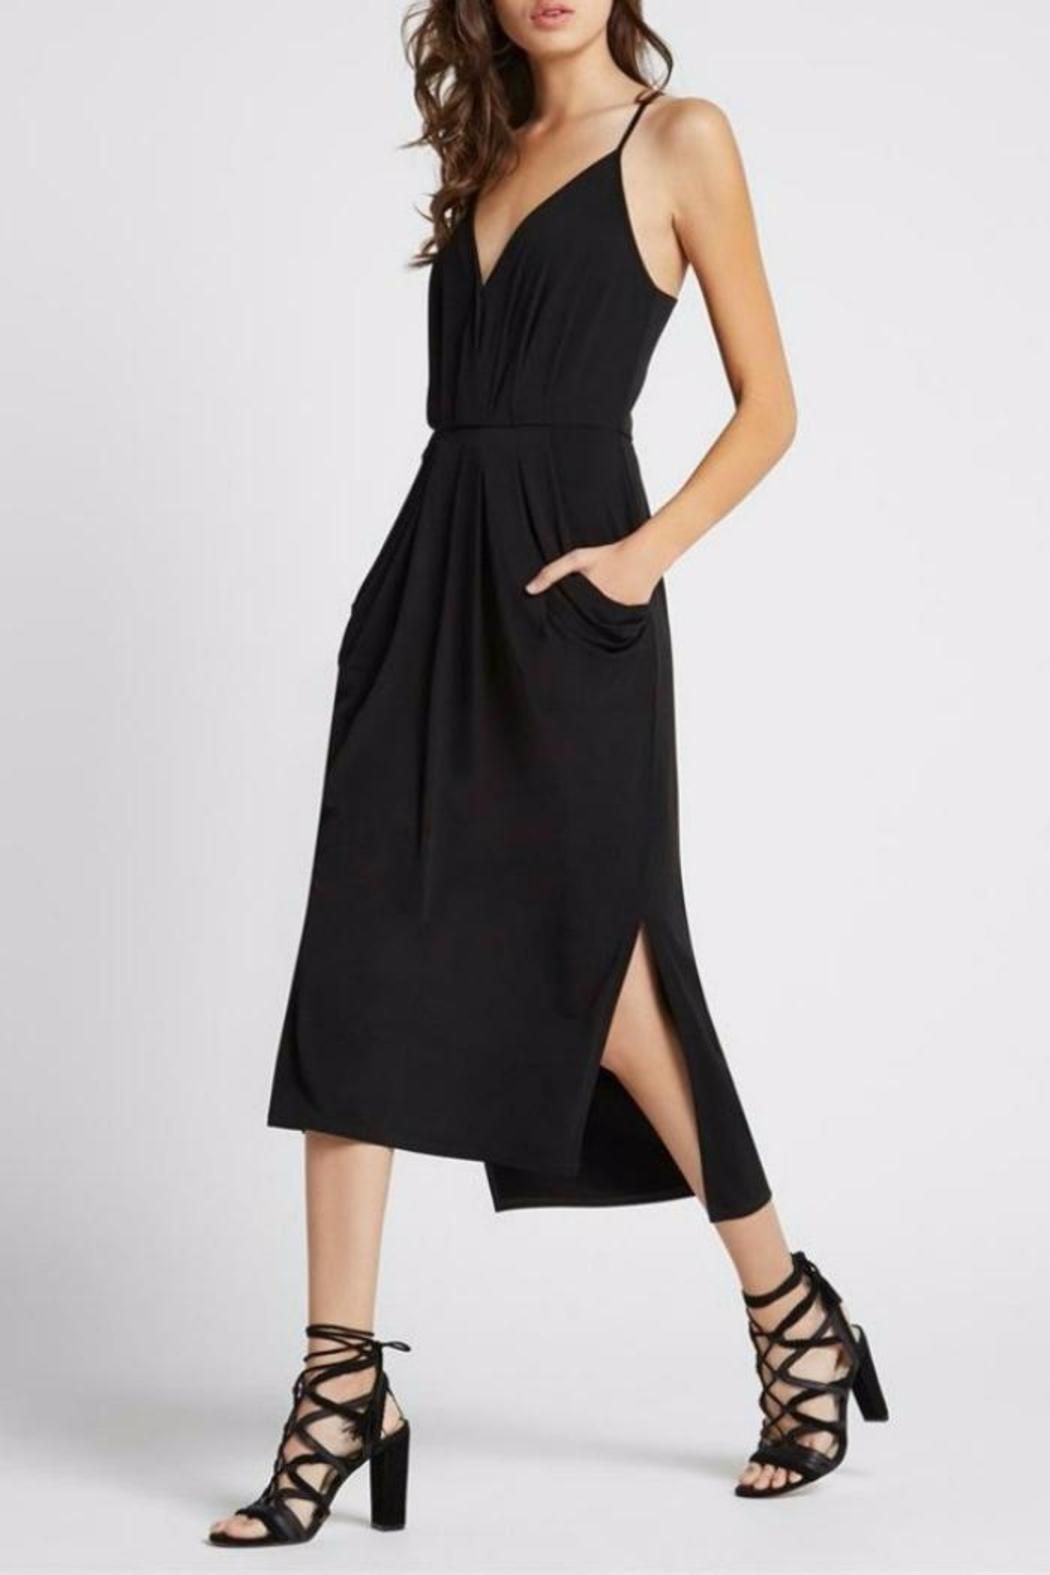 b50a7ffd55 BCBG Max Azria Faux-Wrap Midi Dress from Cleveland by April Snow ...